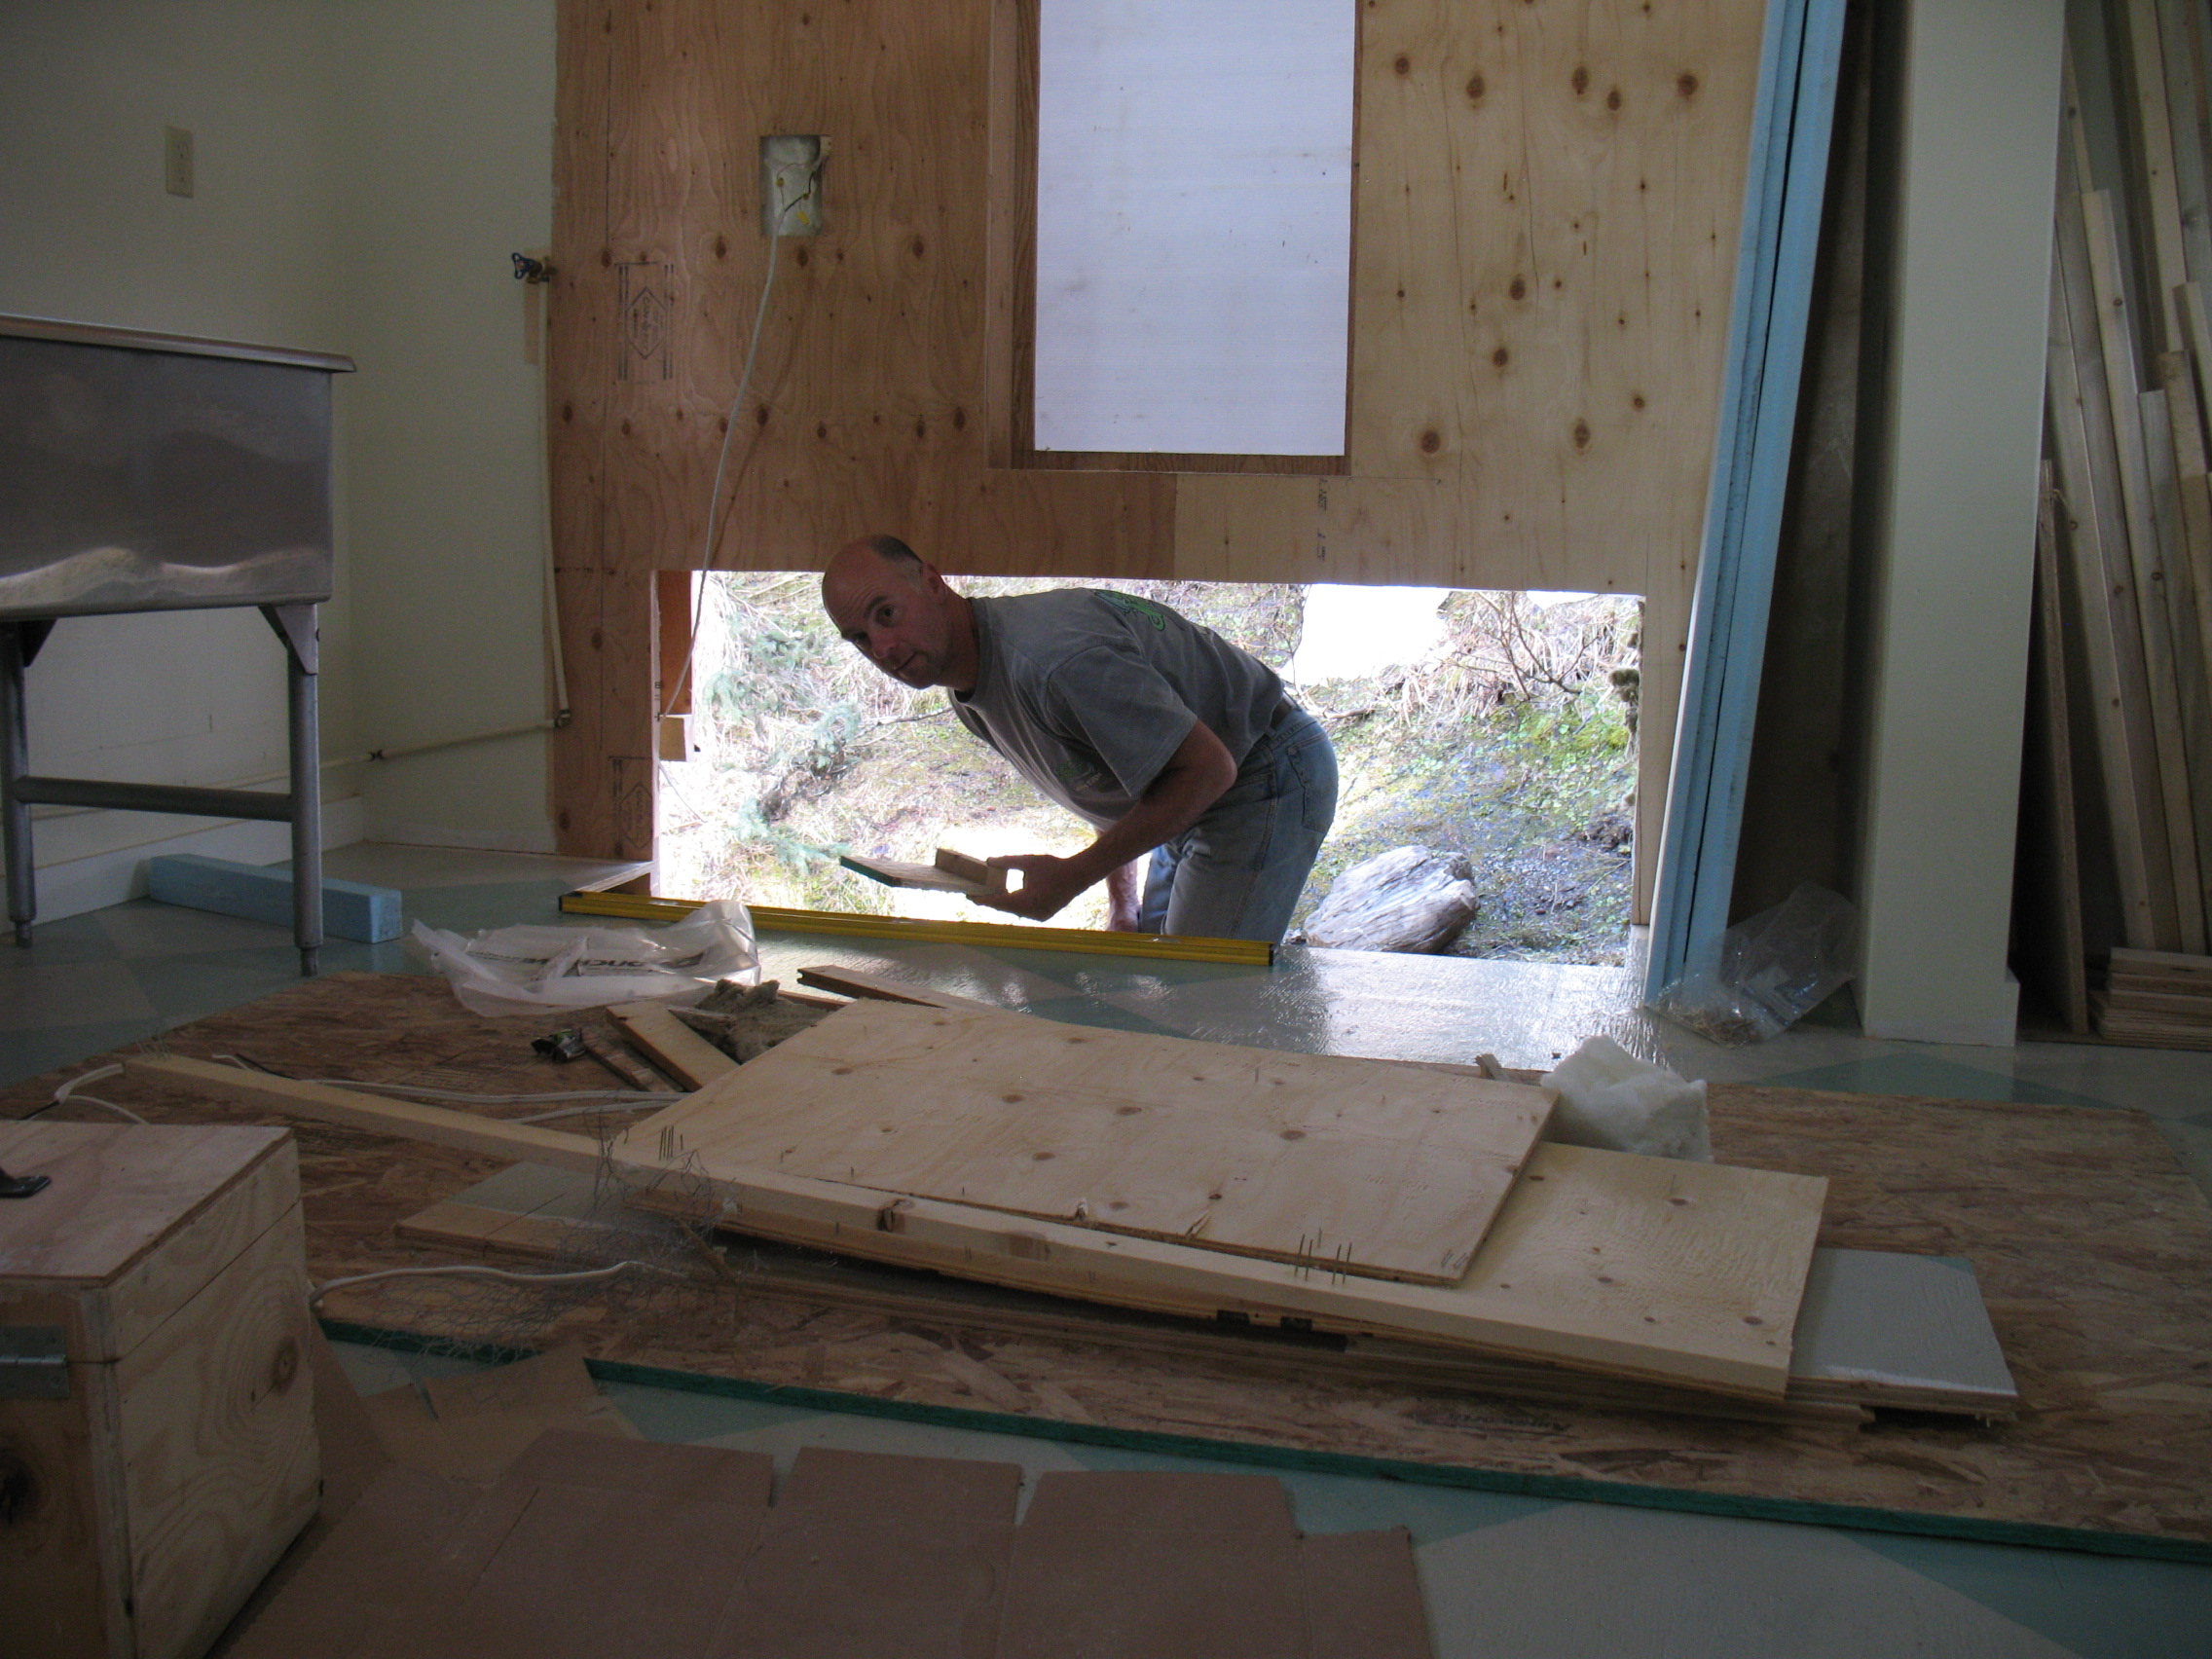 Cutting into the bakery floor and wall in preparation for building the base of the oven.